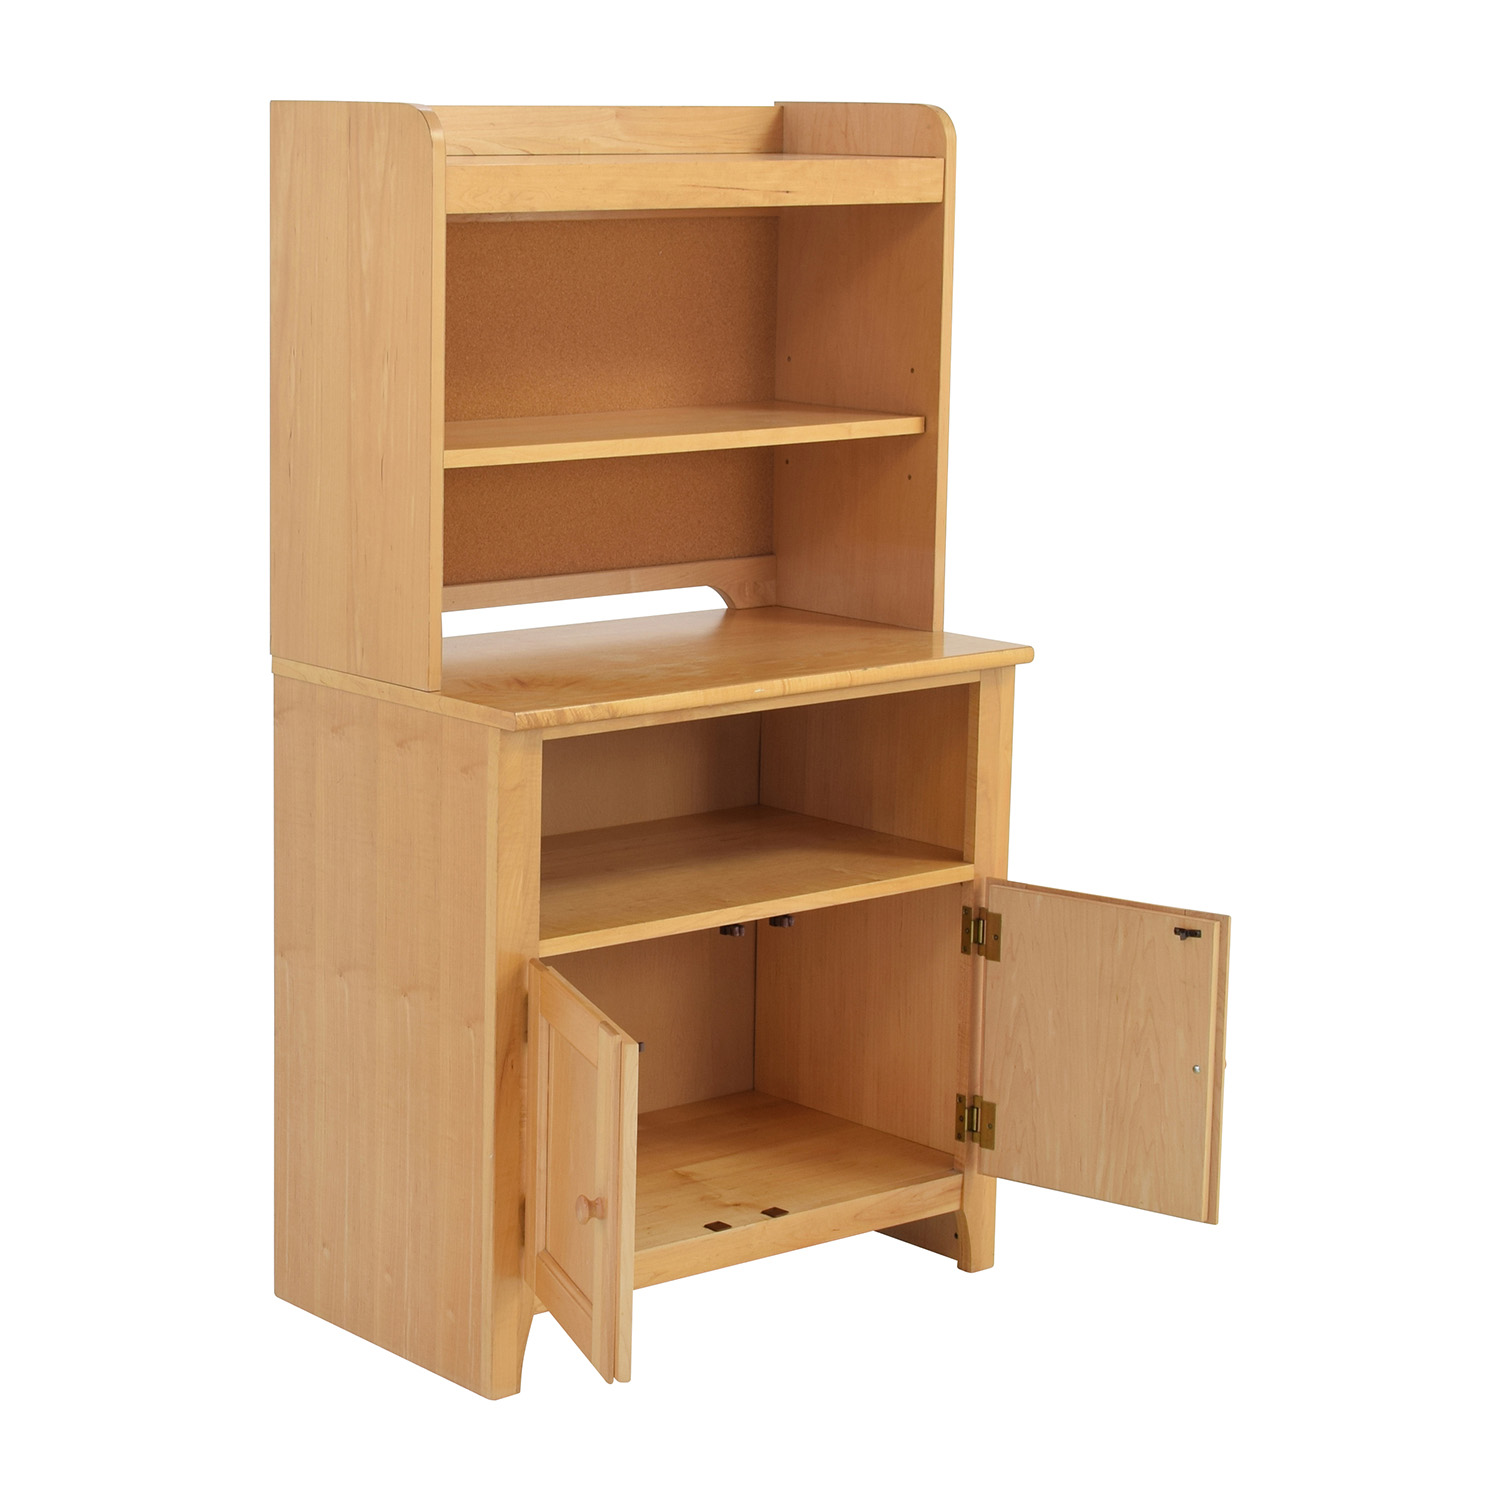 90 off stanley furniture stanley furniture maple hutch for Furniture 90 off